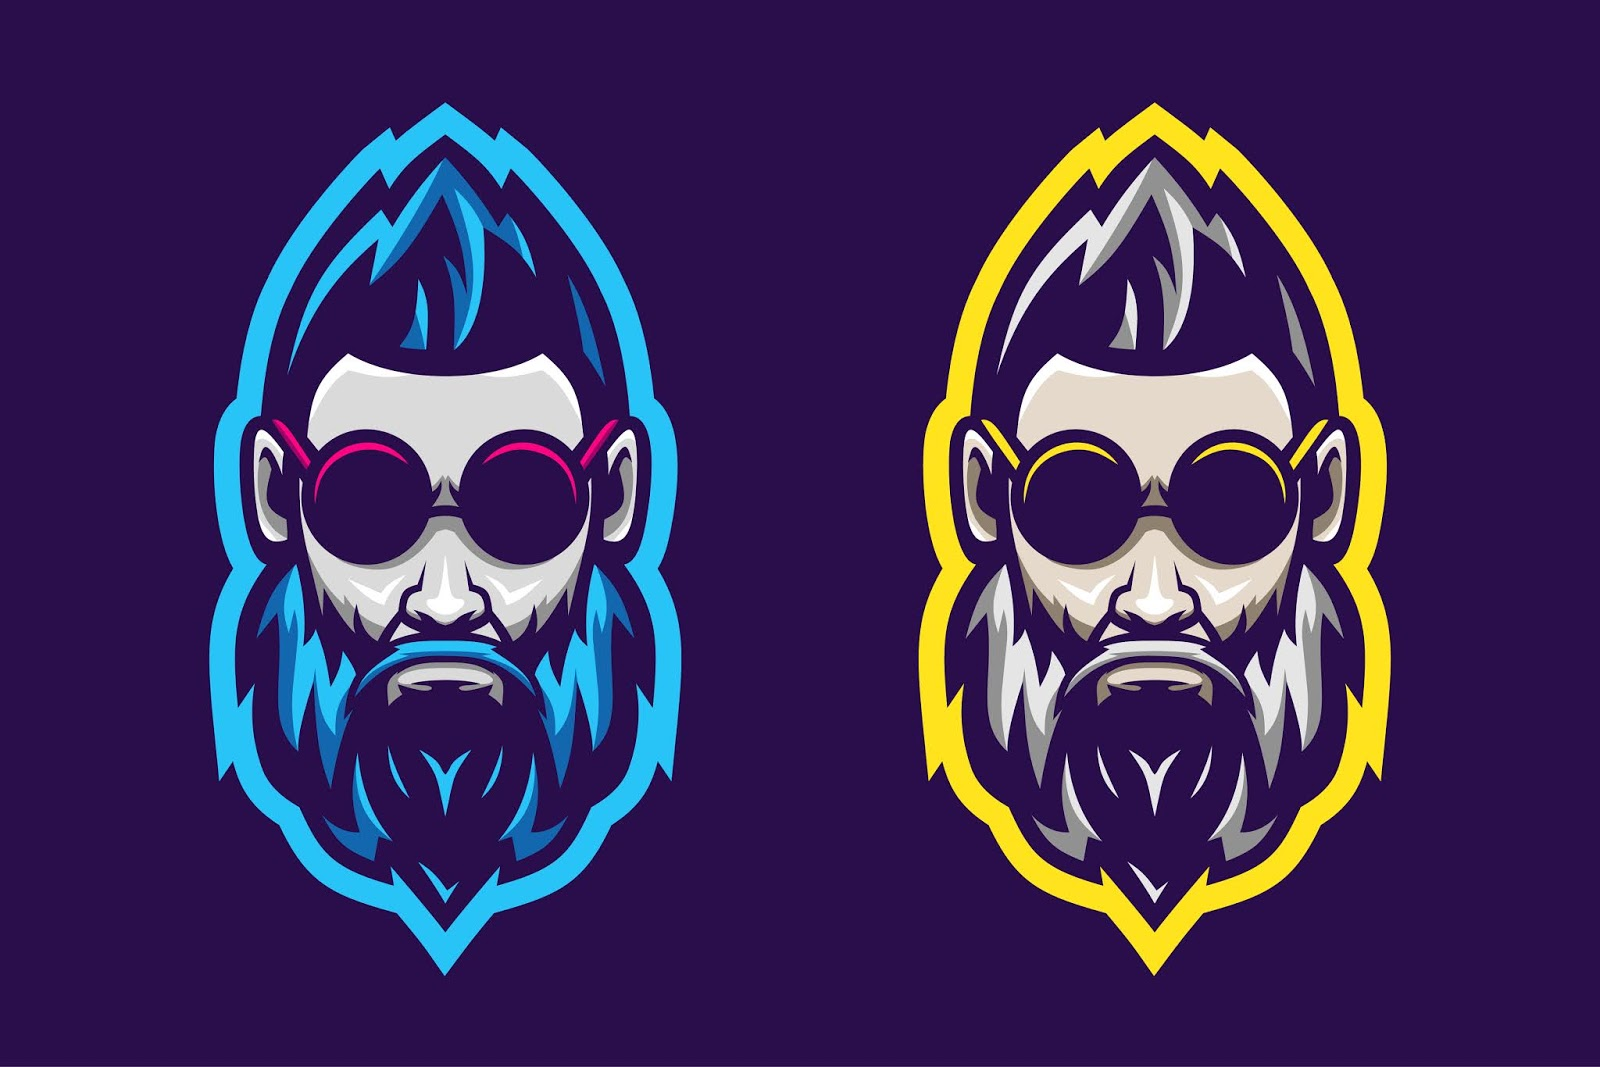 Awesome Man Beard Logo Option Color Free Download Vector CDR, AI, EPS and PNG Formats